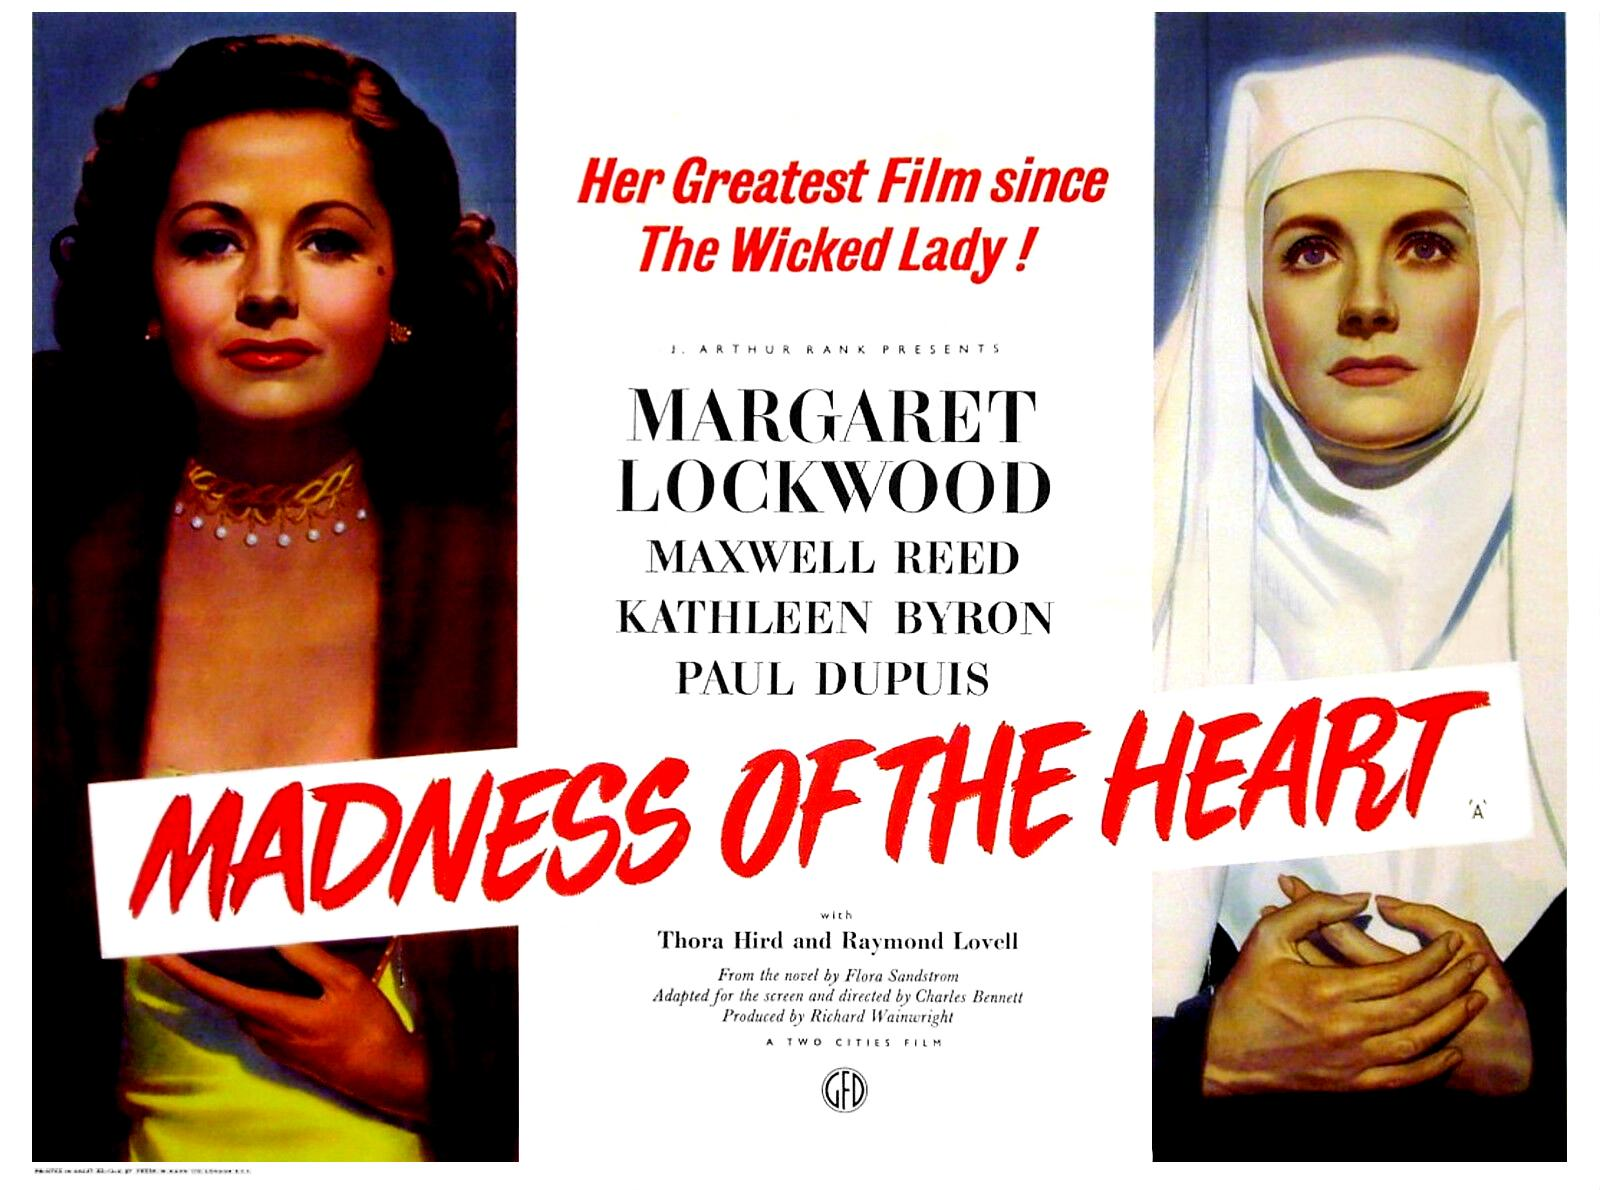 Margaret Lockwood in Madness of the Heart (1949)